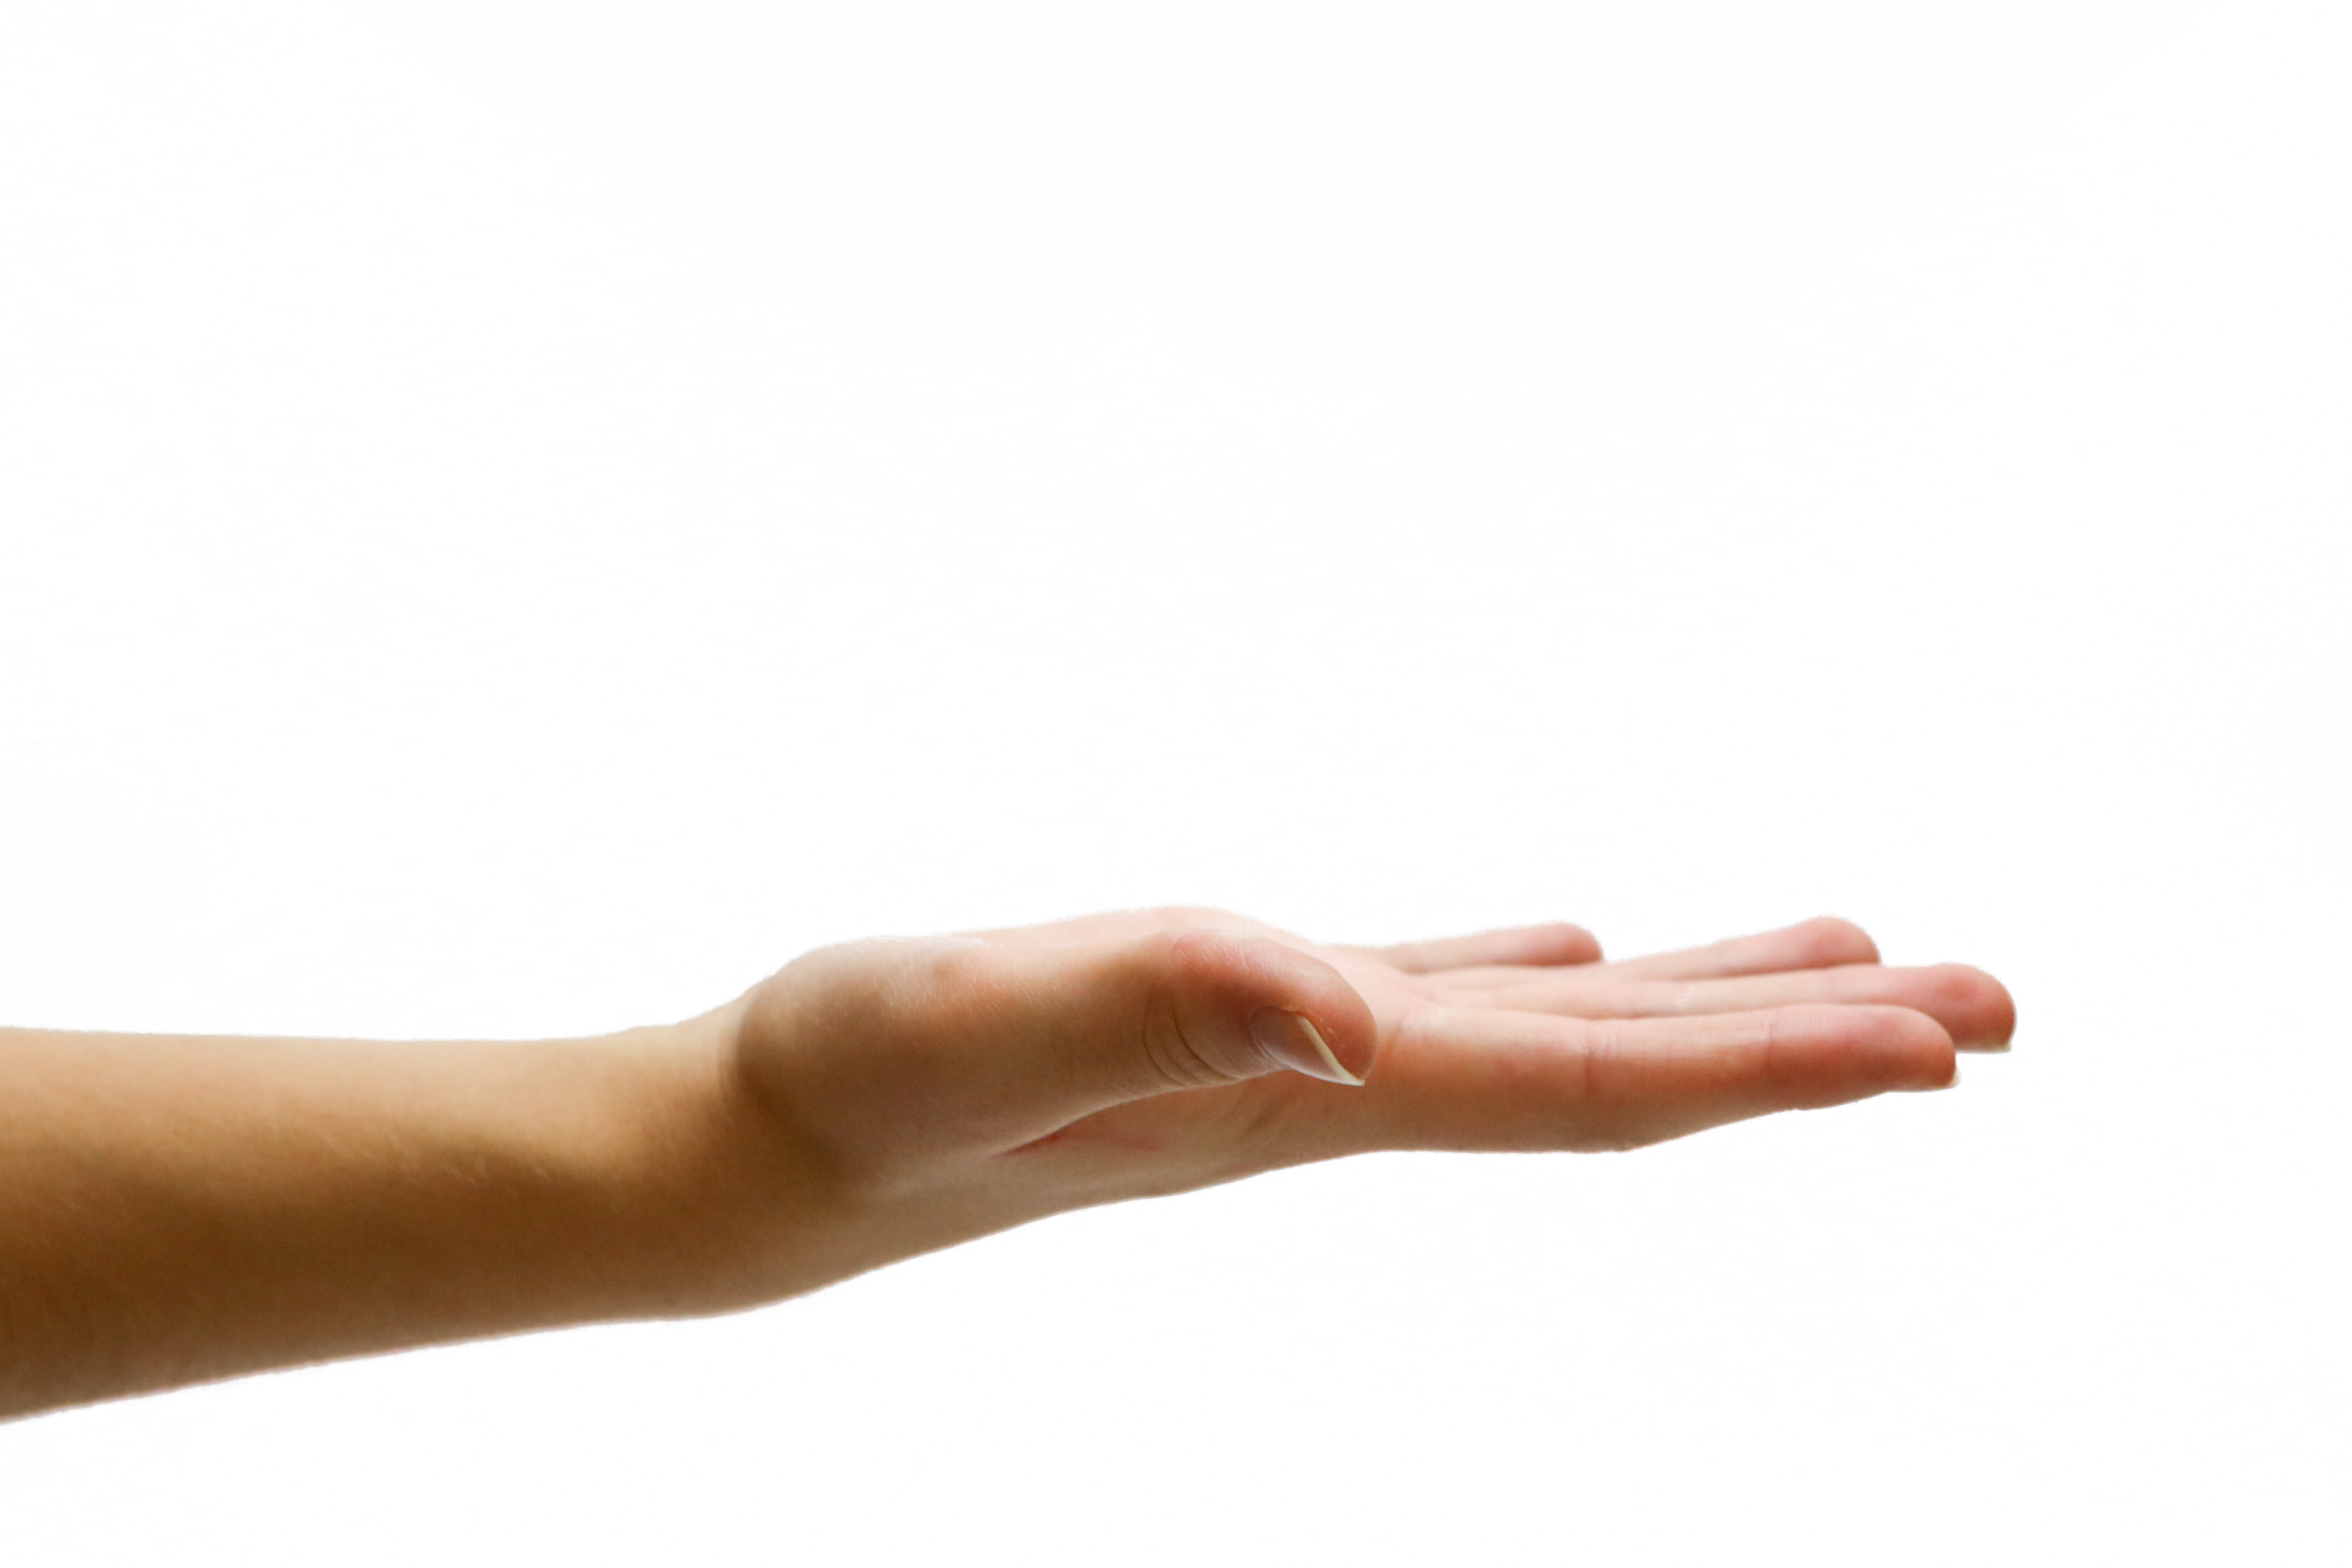 Hand Opened PNG Image